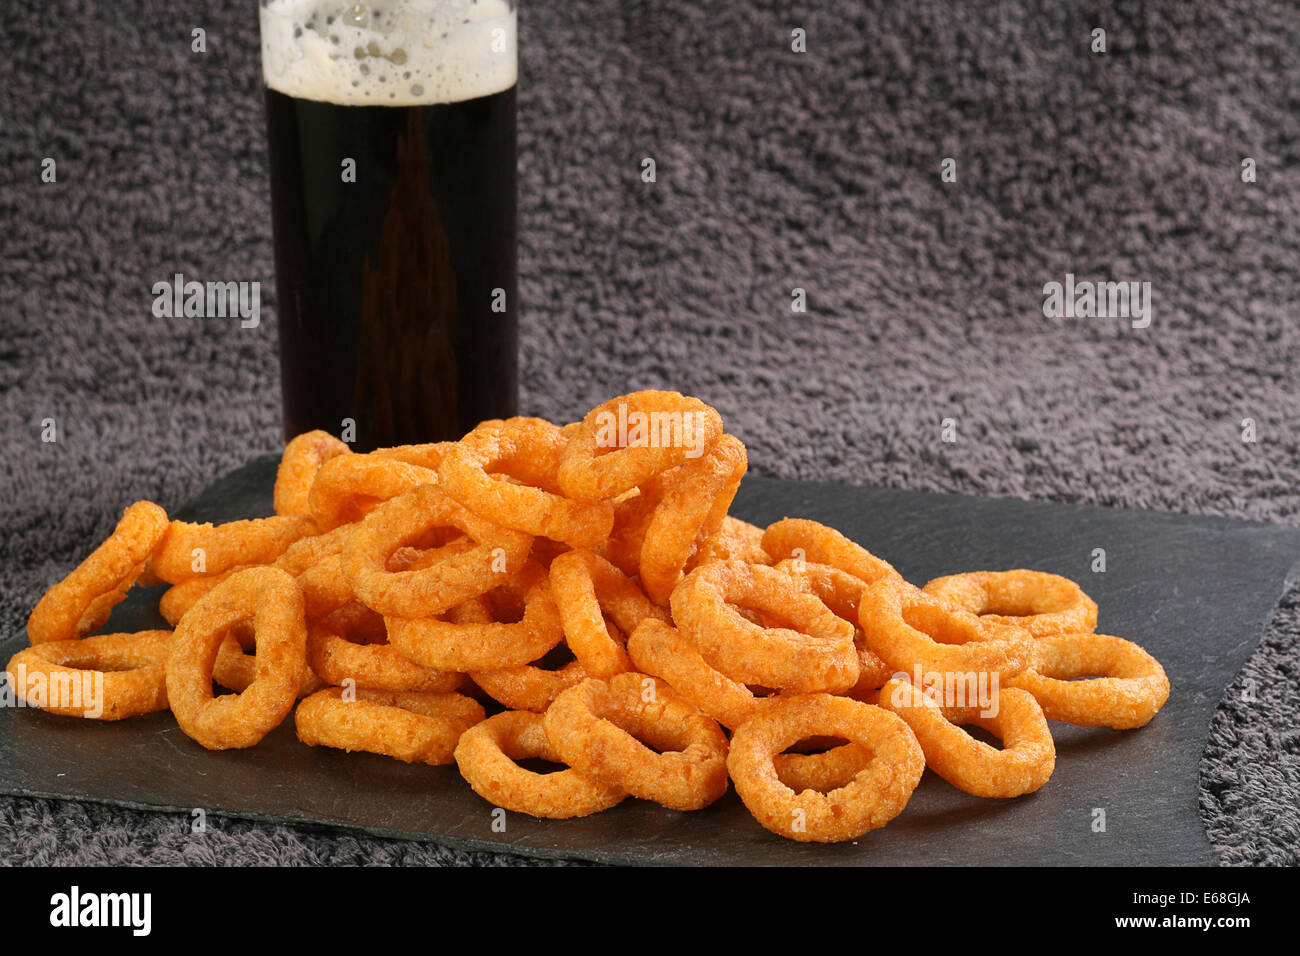 pile of onion flavoured crispy snacks wit a glass of beer - Stock Image